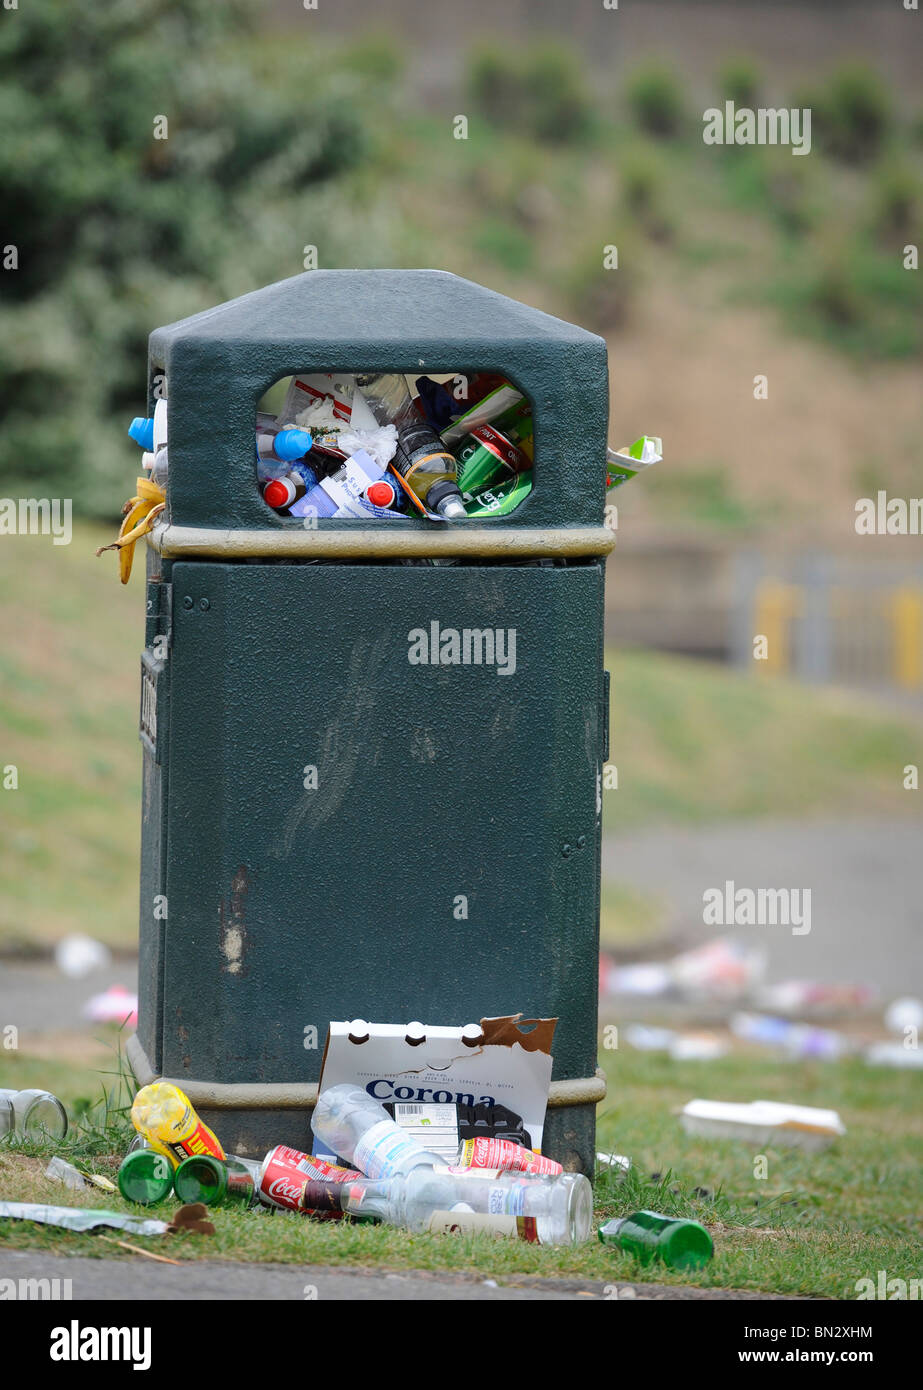 A bin over flowing with rubbish in Seaford, East Sussex, UK. - Stock Image